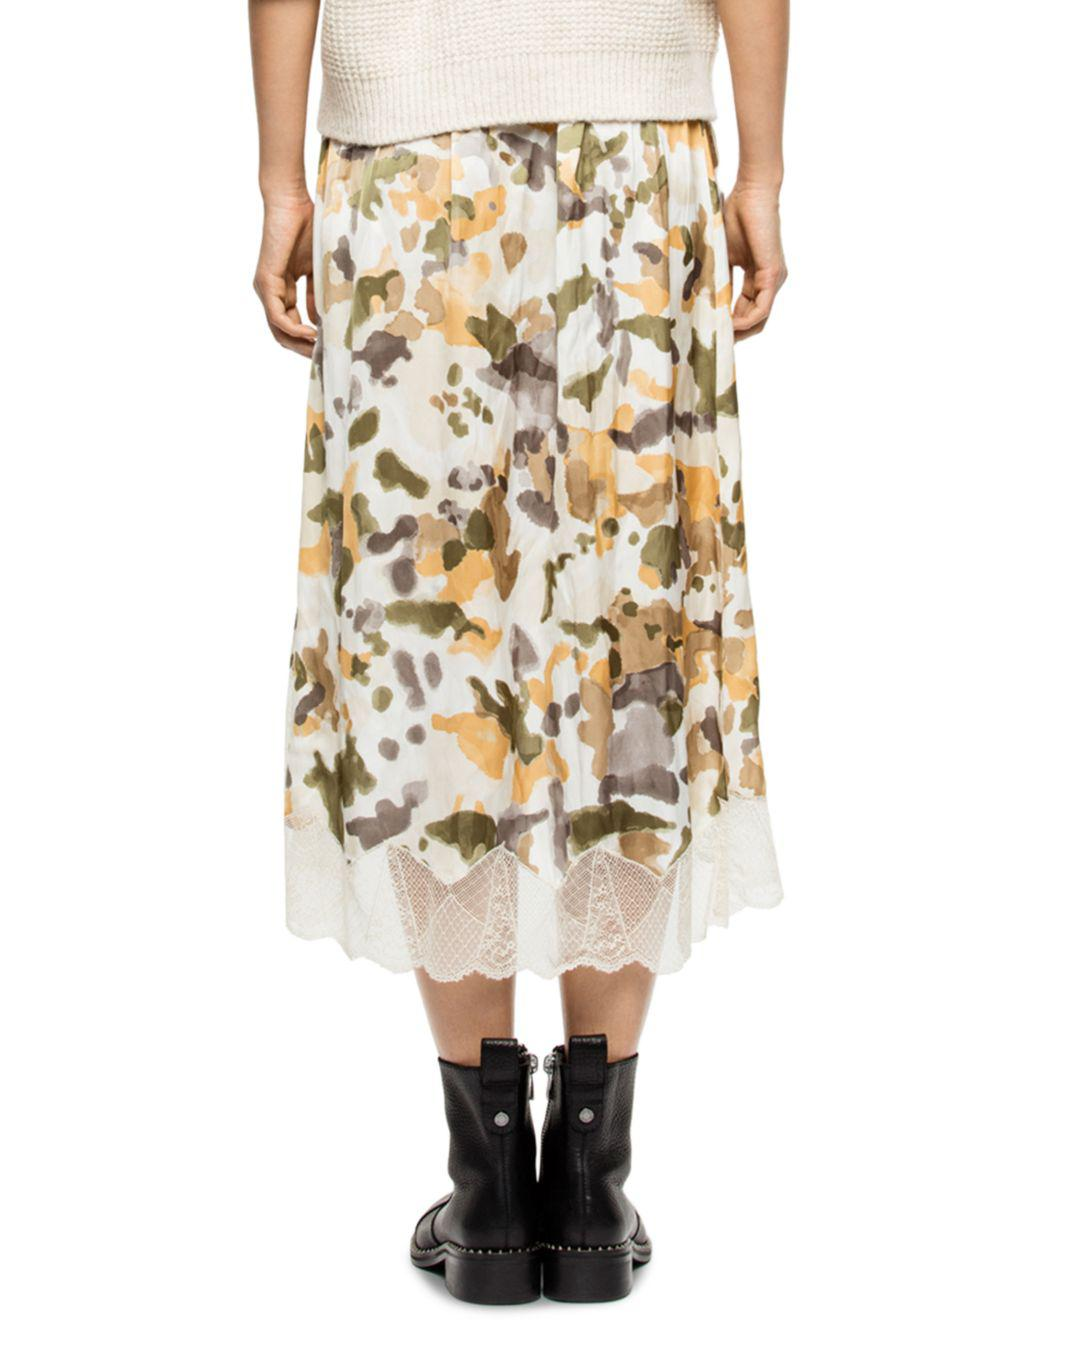 Lyst - Zadig   Voltaire Joslin Camo Skirt in Natural - Save 15% 3bfc90f75